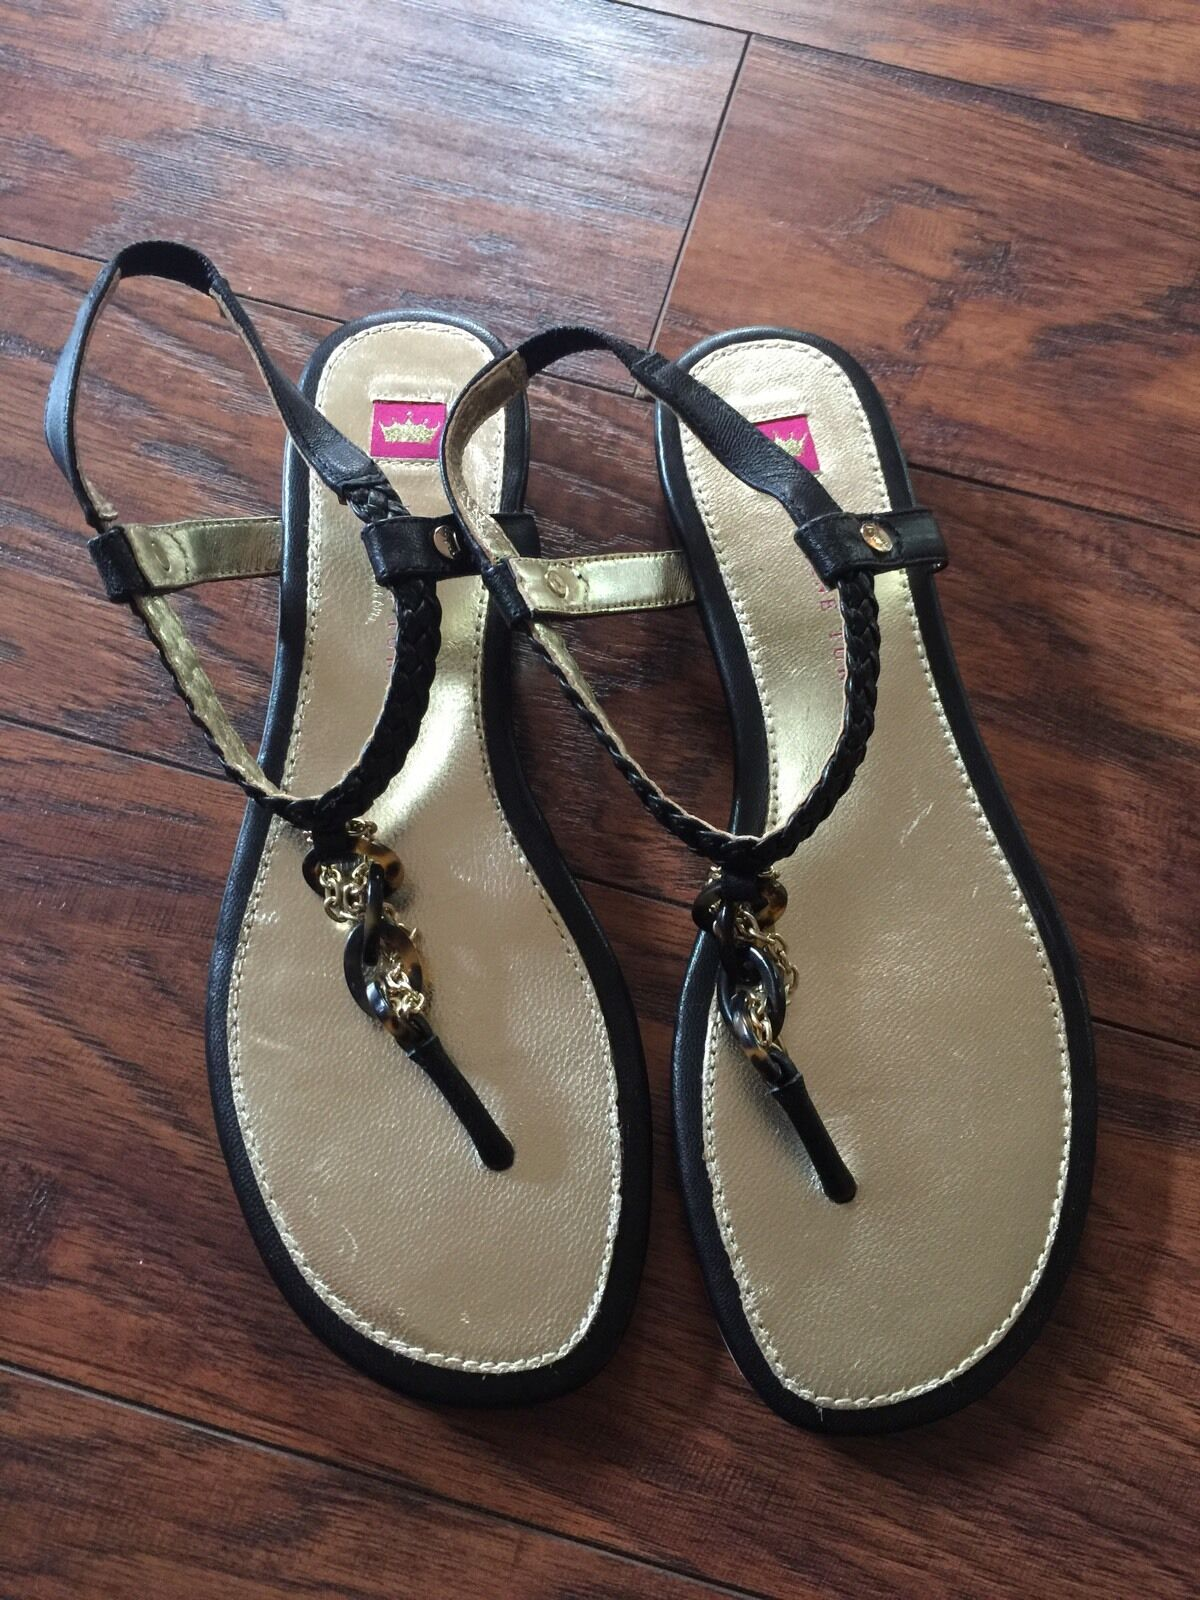 New ELAINE TURNER Ankle Sandals T Strap Thong Leather Sandals Ankle Gold Chain Black 6.5 497dad